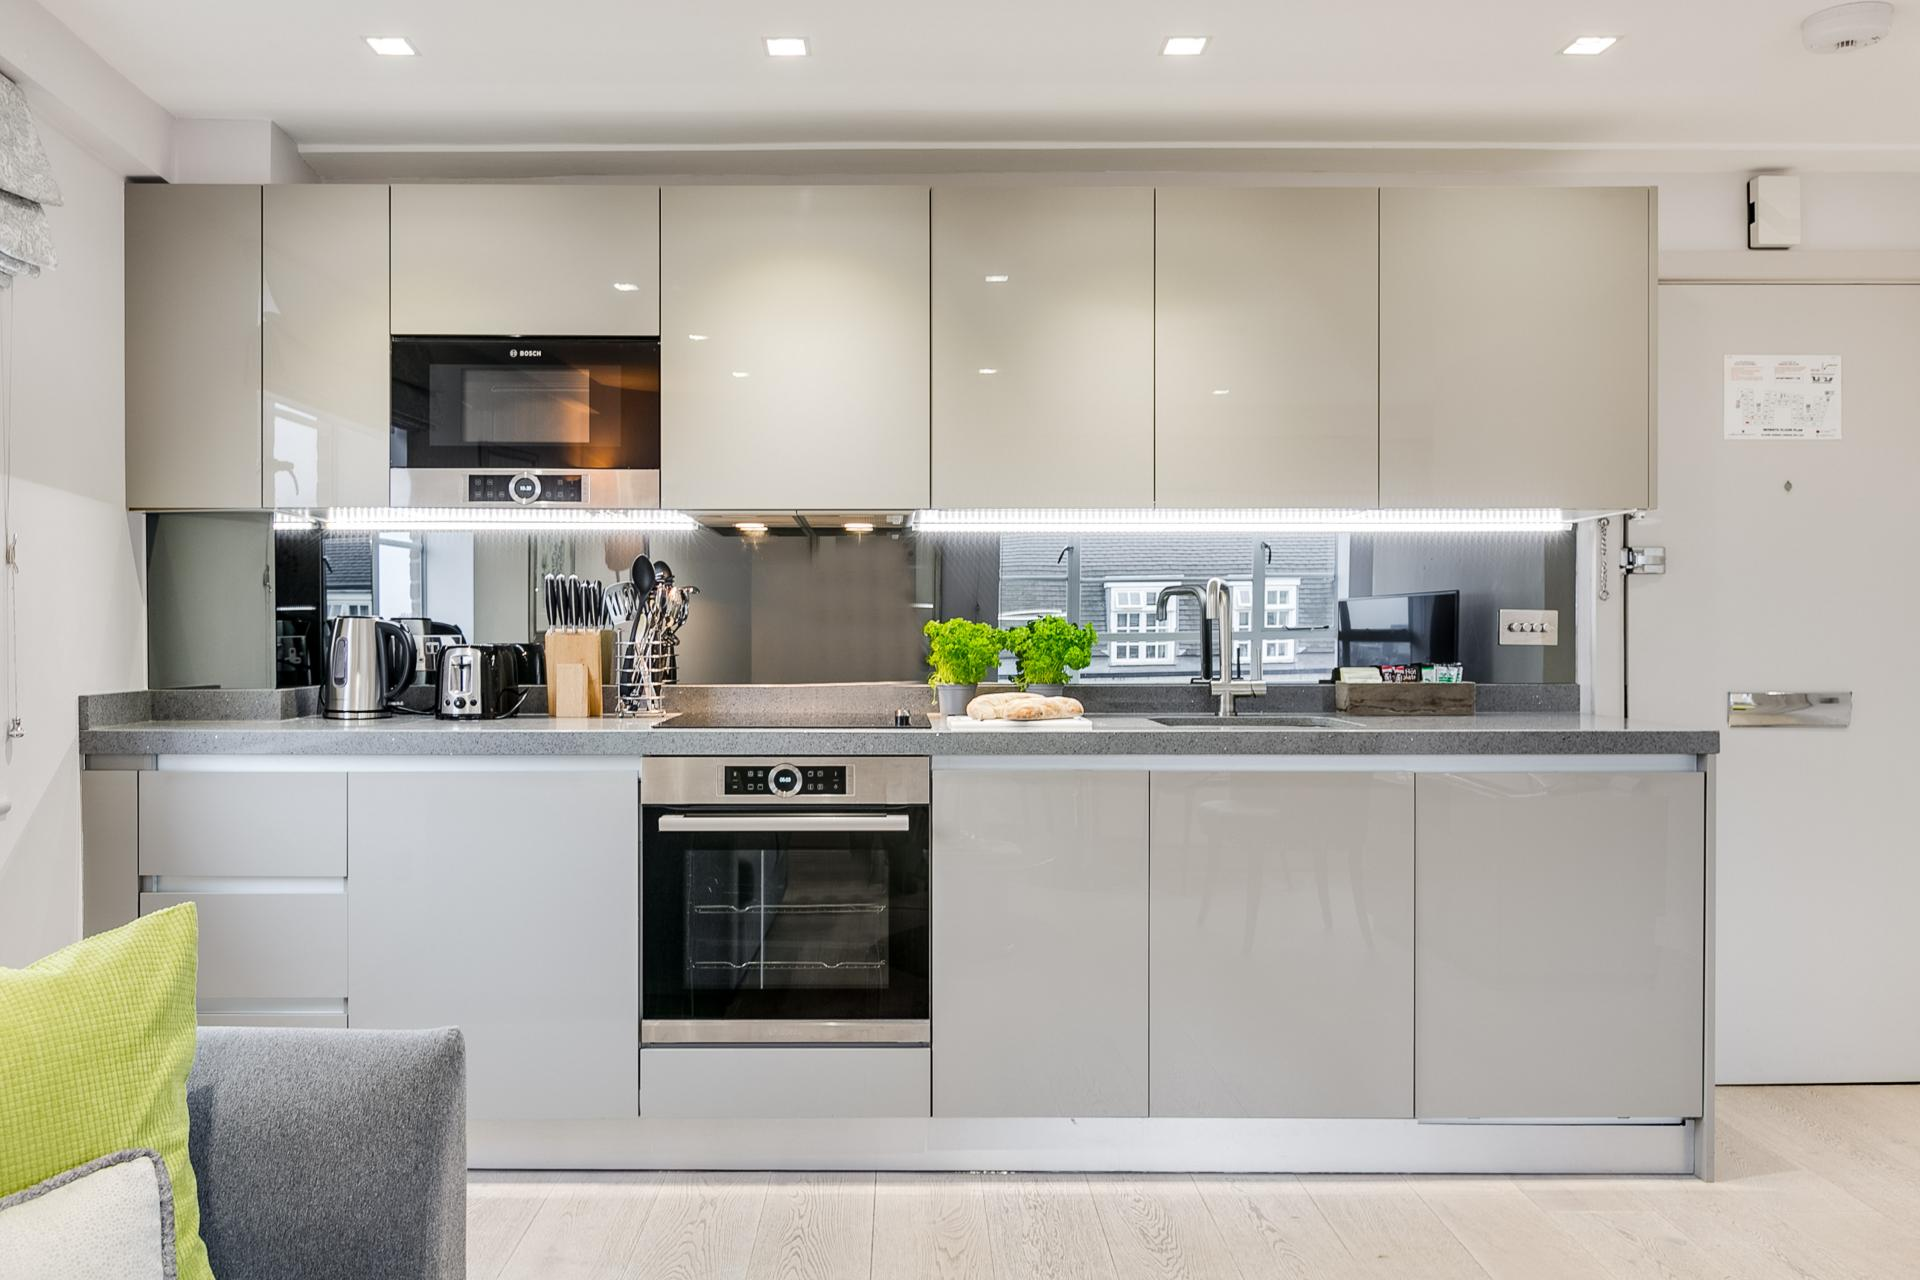 Kitchen at Nell Gwynn Chelsea Accommodation, Chelsea, London - Citybase Apartments